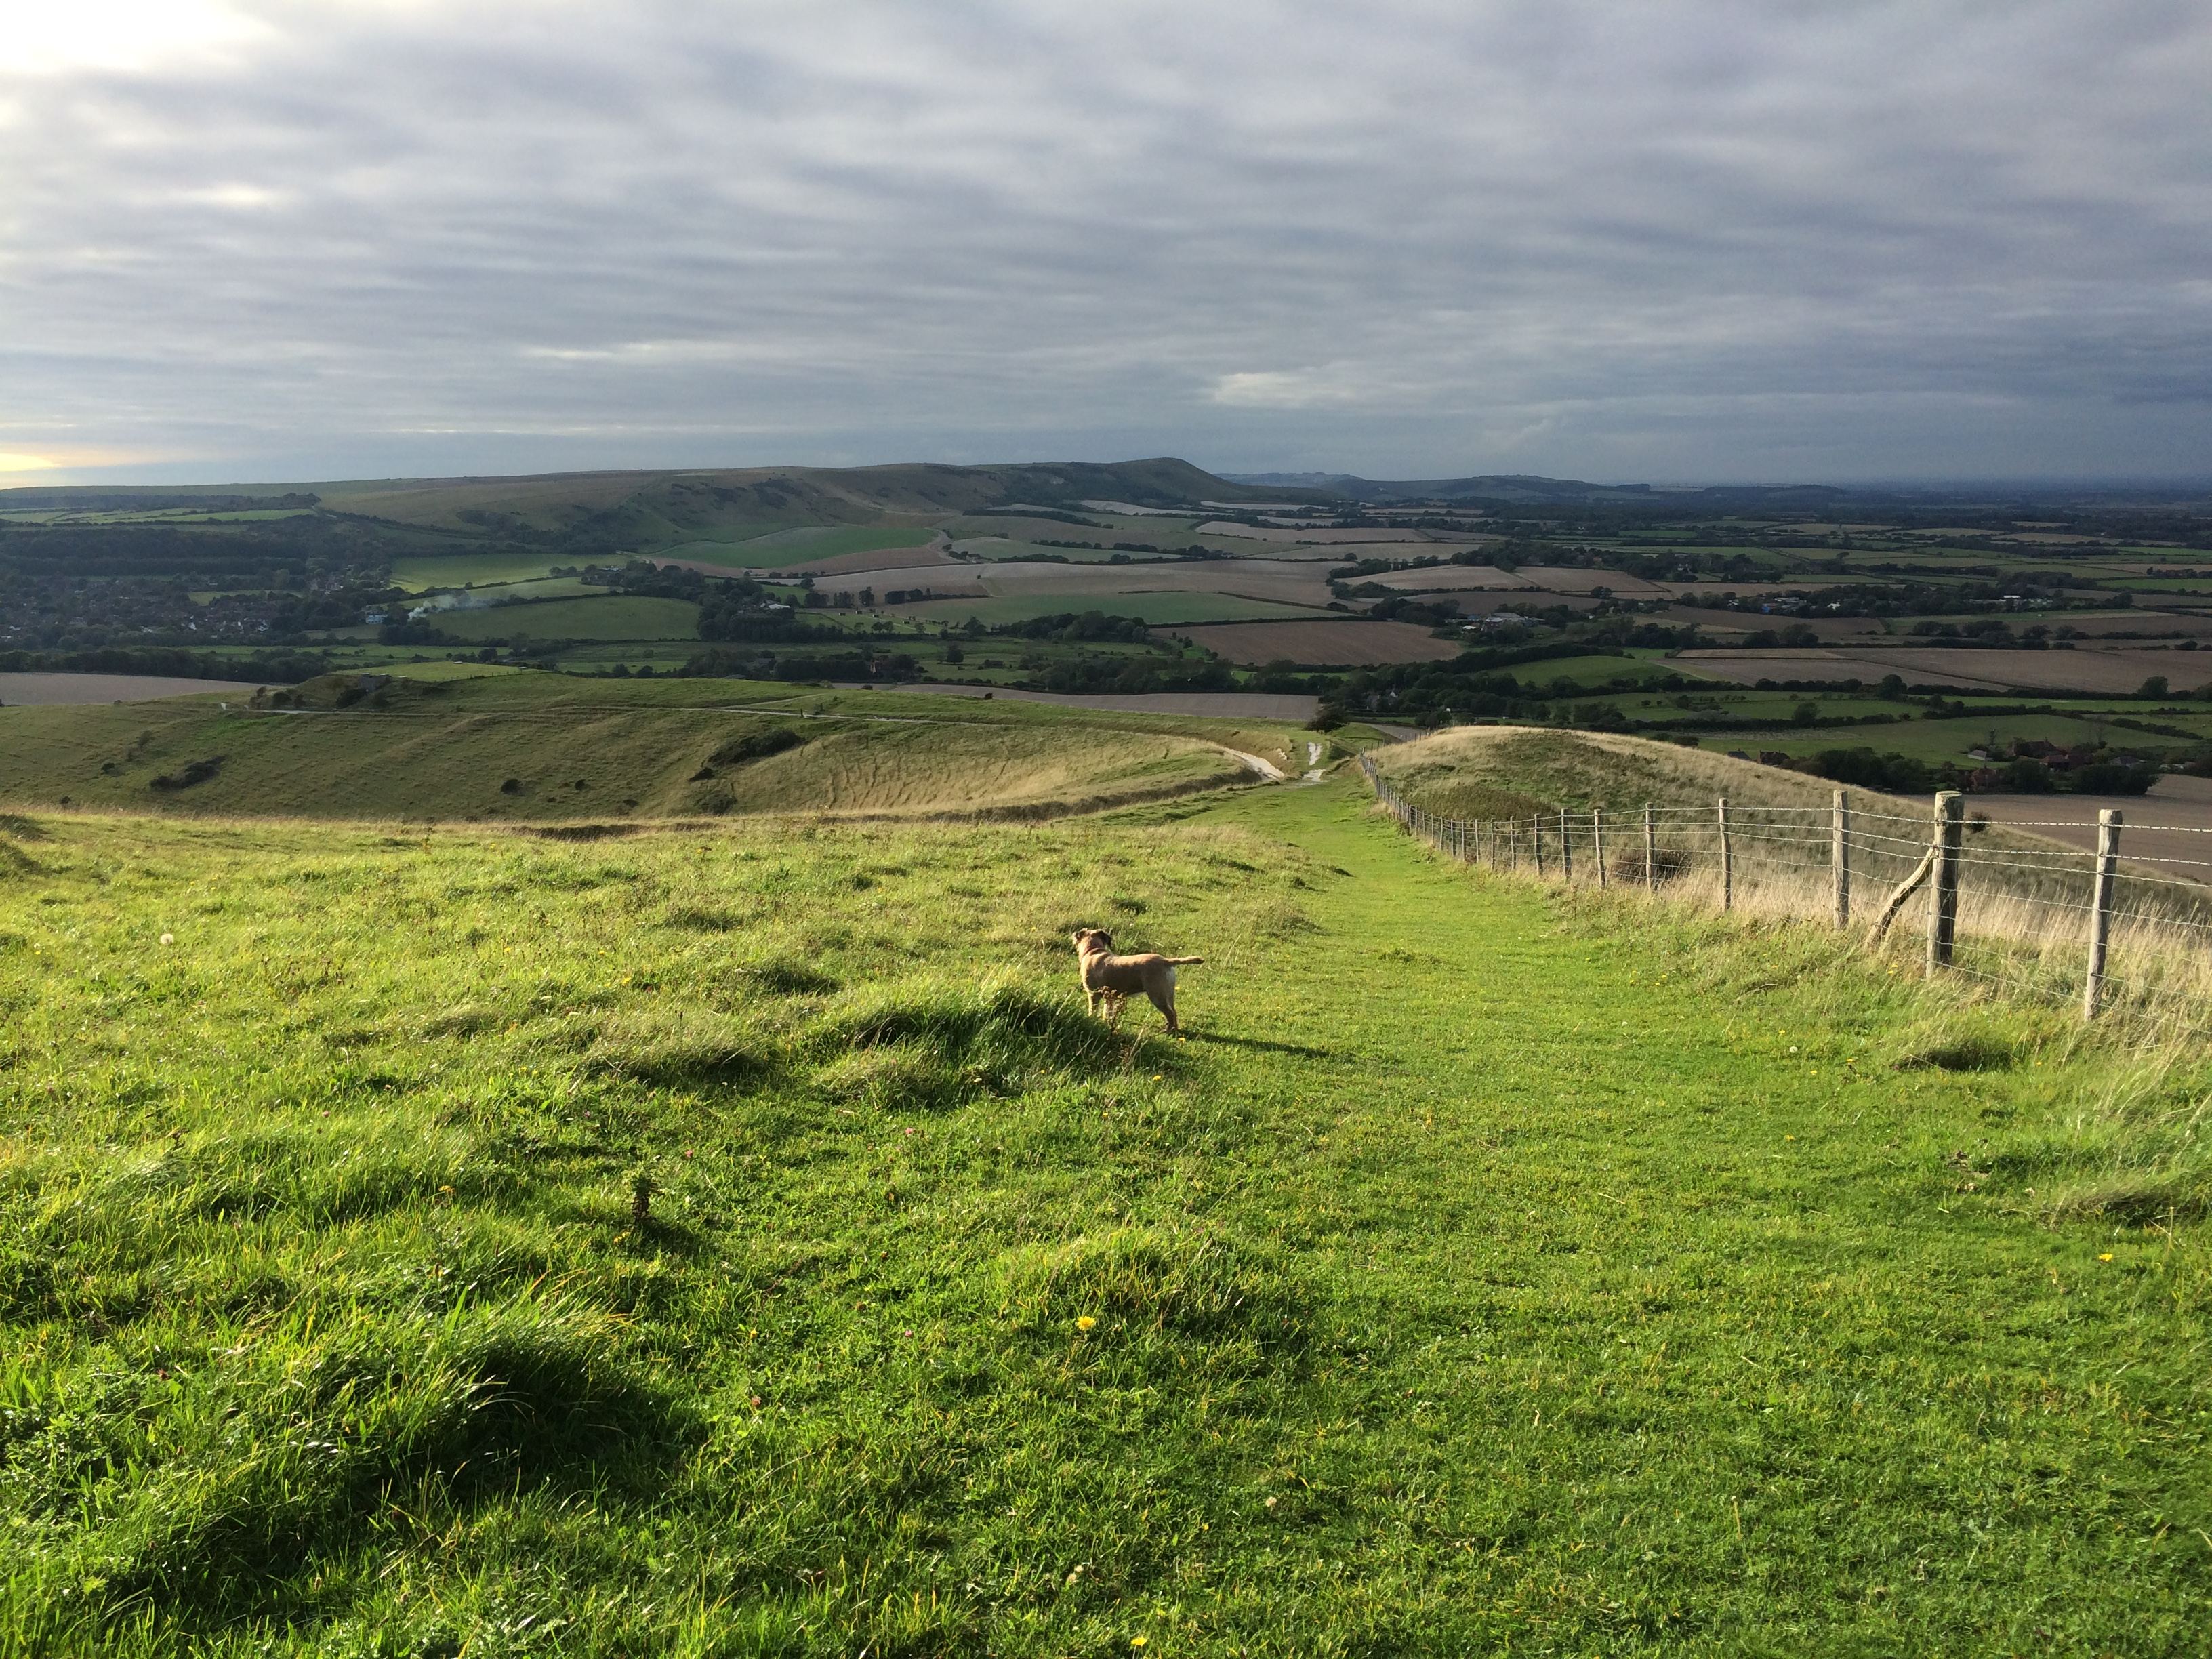 South Downs Way, towards Alfriston